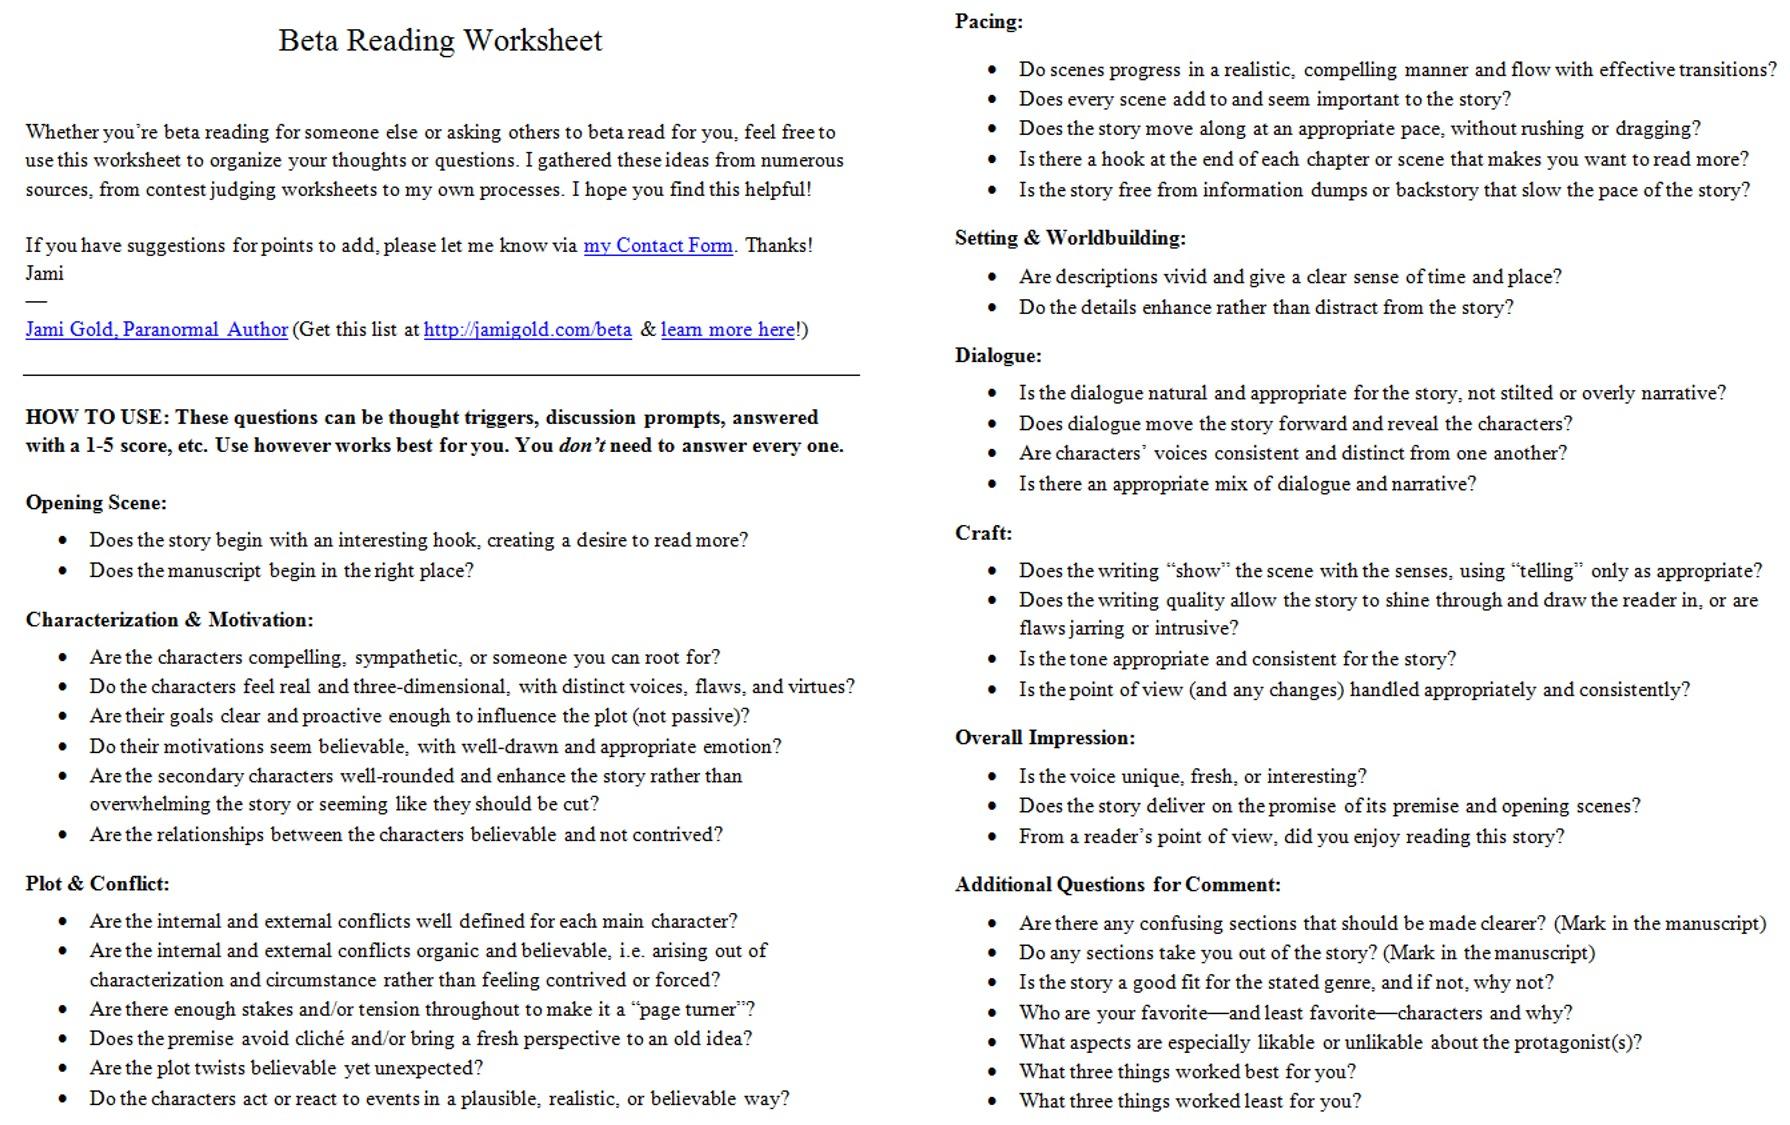 Weirdmailus  Ravishing Worksheets For Writers  Jami Gold Paranormal Author With Goodlooking Screen Shot Of The Twopage Beta Reading Worksheet With Cool Times Tables Worksheet Printable Also Groundhogs Day Worksheets In Addition Algebraic Fractions Worksheet With Answers And Er Sound Worksheet As Well As Sample Multiplication Worksheets Additionally Worksheets For Fifth Grade Math From Jamigoldcom With Weirdmailus  Goodlooking Worksheets For Writers  Jami Gold Paranormal Author With Cool Screen Shot Of The Twopage Beta Reading Worksheet And Ravishing Times Tables Worksheet Printable Also Groundhogs Day Worksheets In Addition Algebraic Fractions Worksheet With Answers From Jamigoldcom